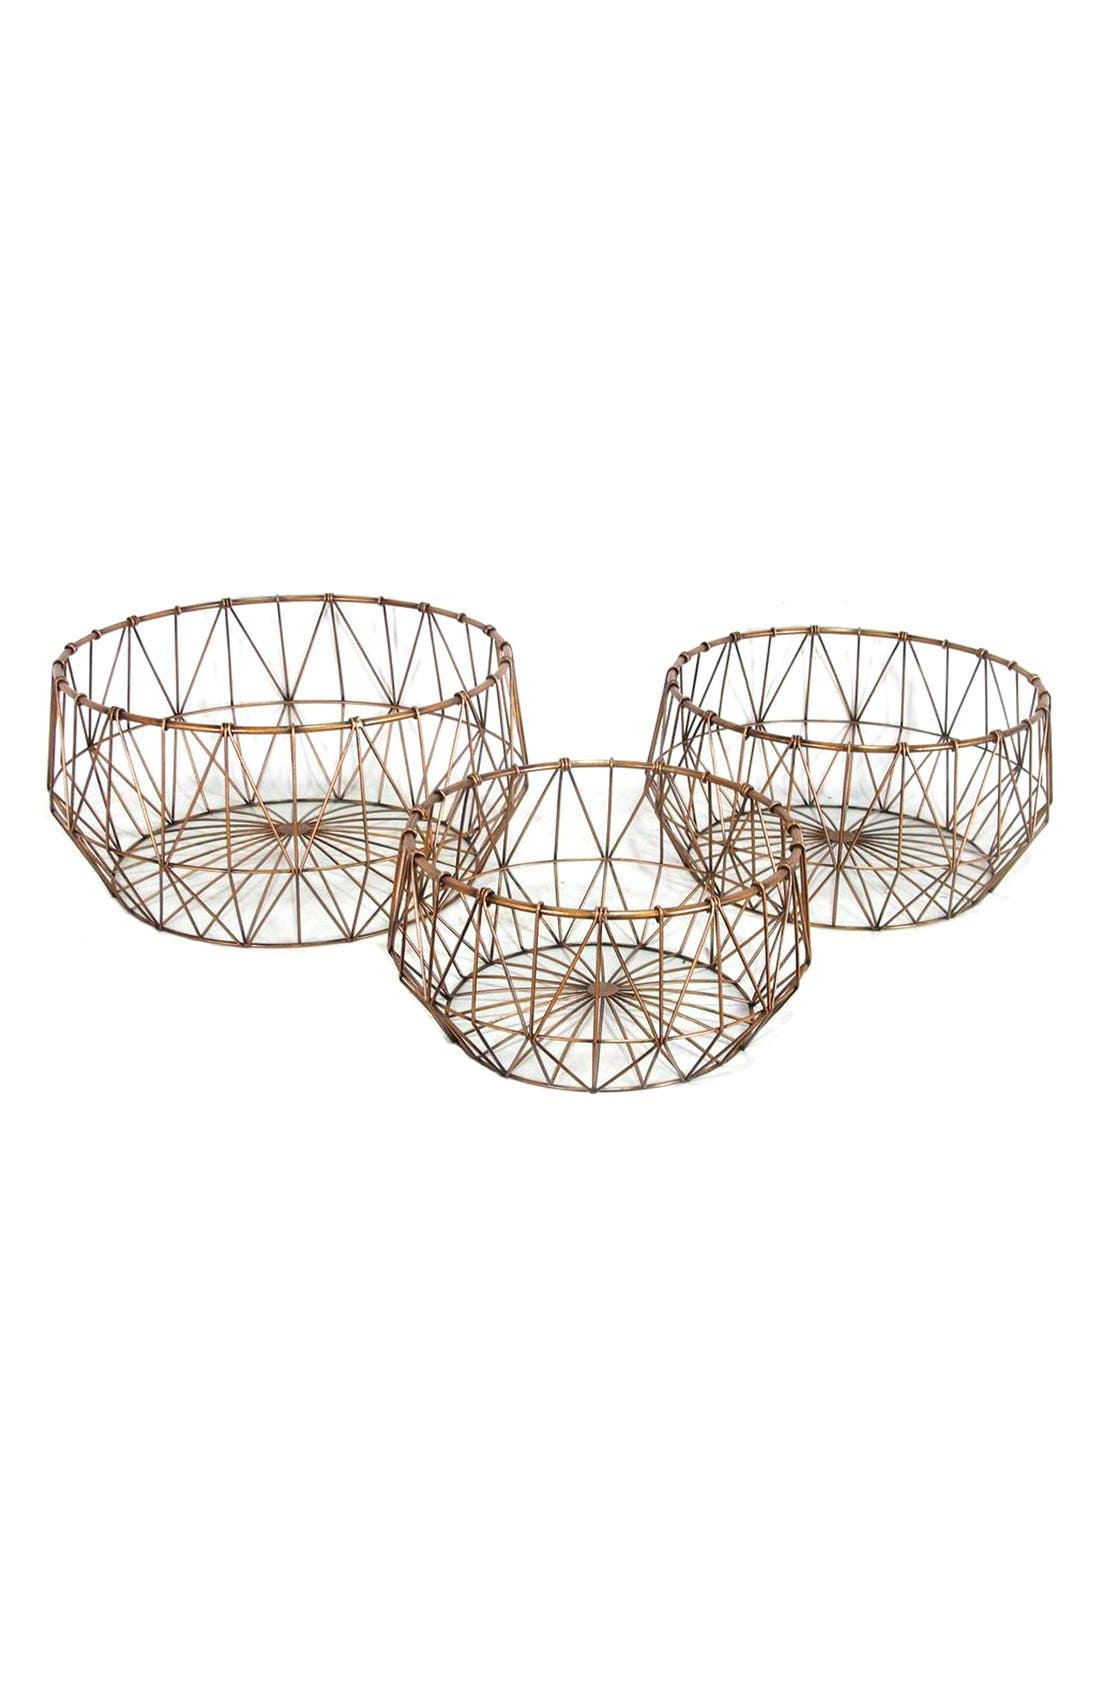 Alternate Image 1 Selected - Crystal Art Gallery Copper Wire Baskets (Set of 3)